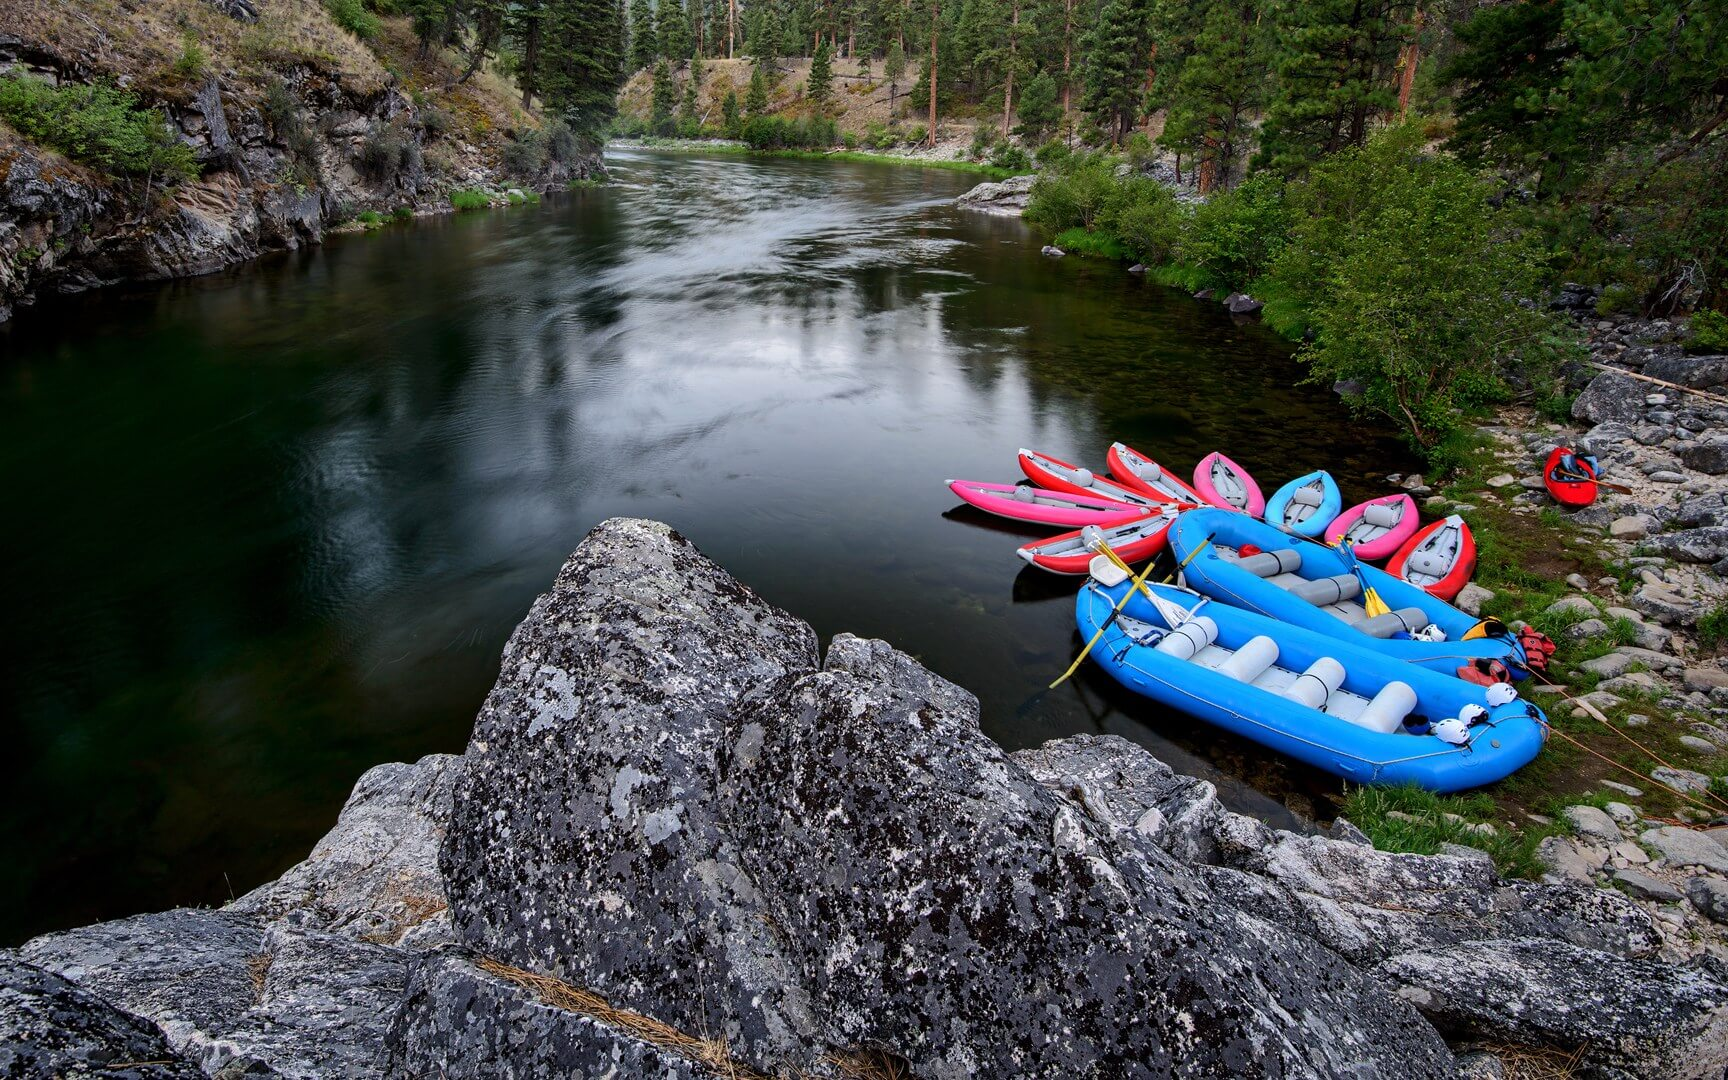 best whitewater rafting in the us Salmon River near Riggins Idaho